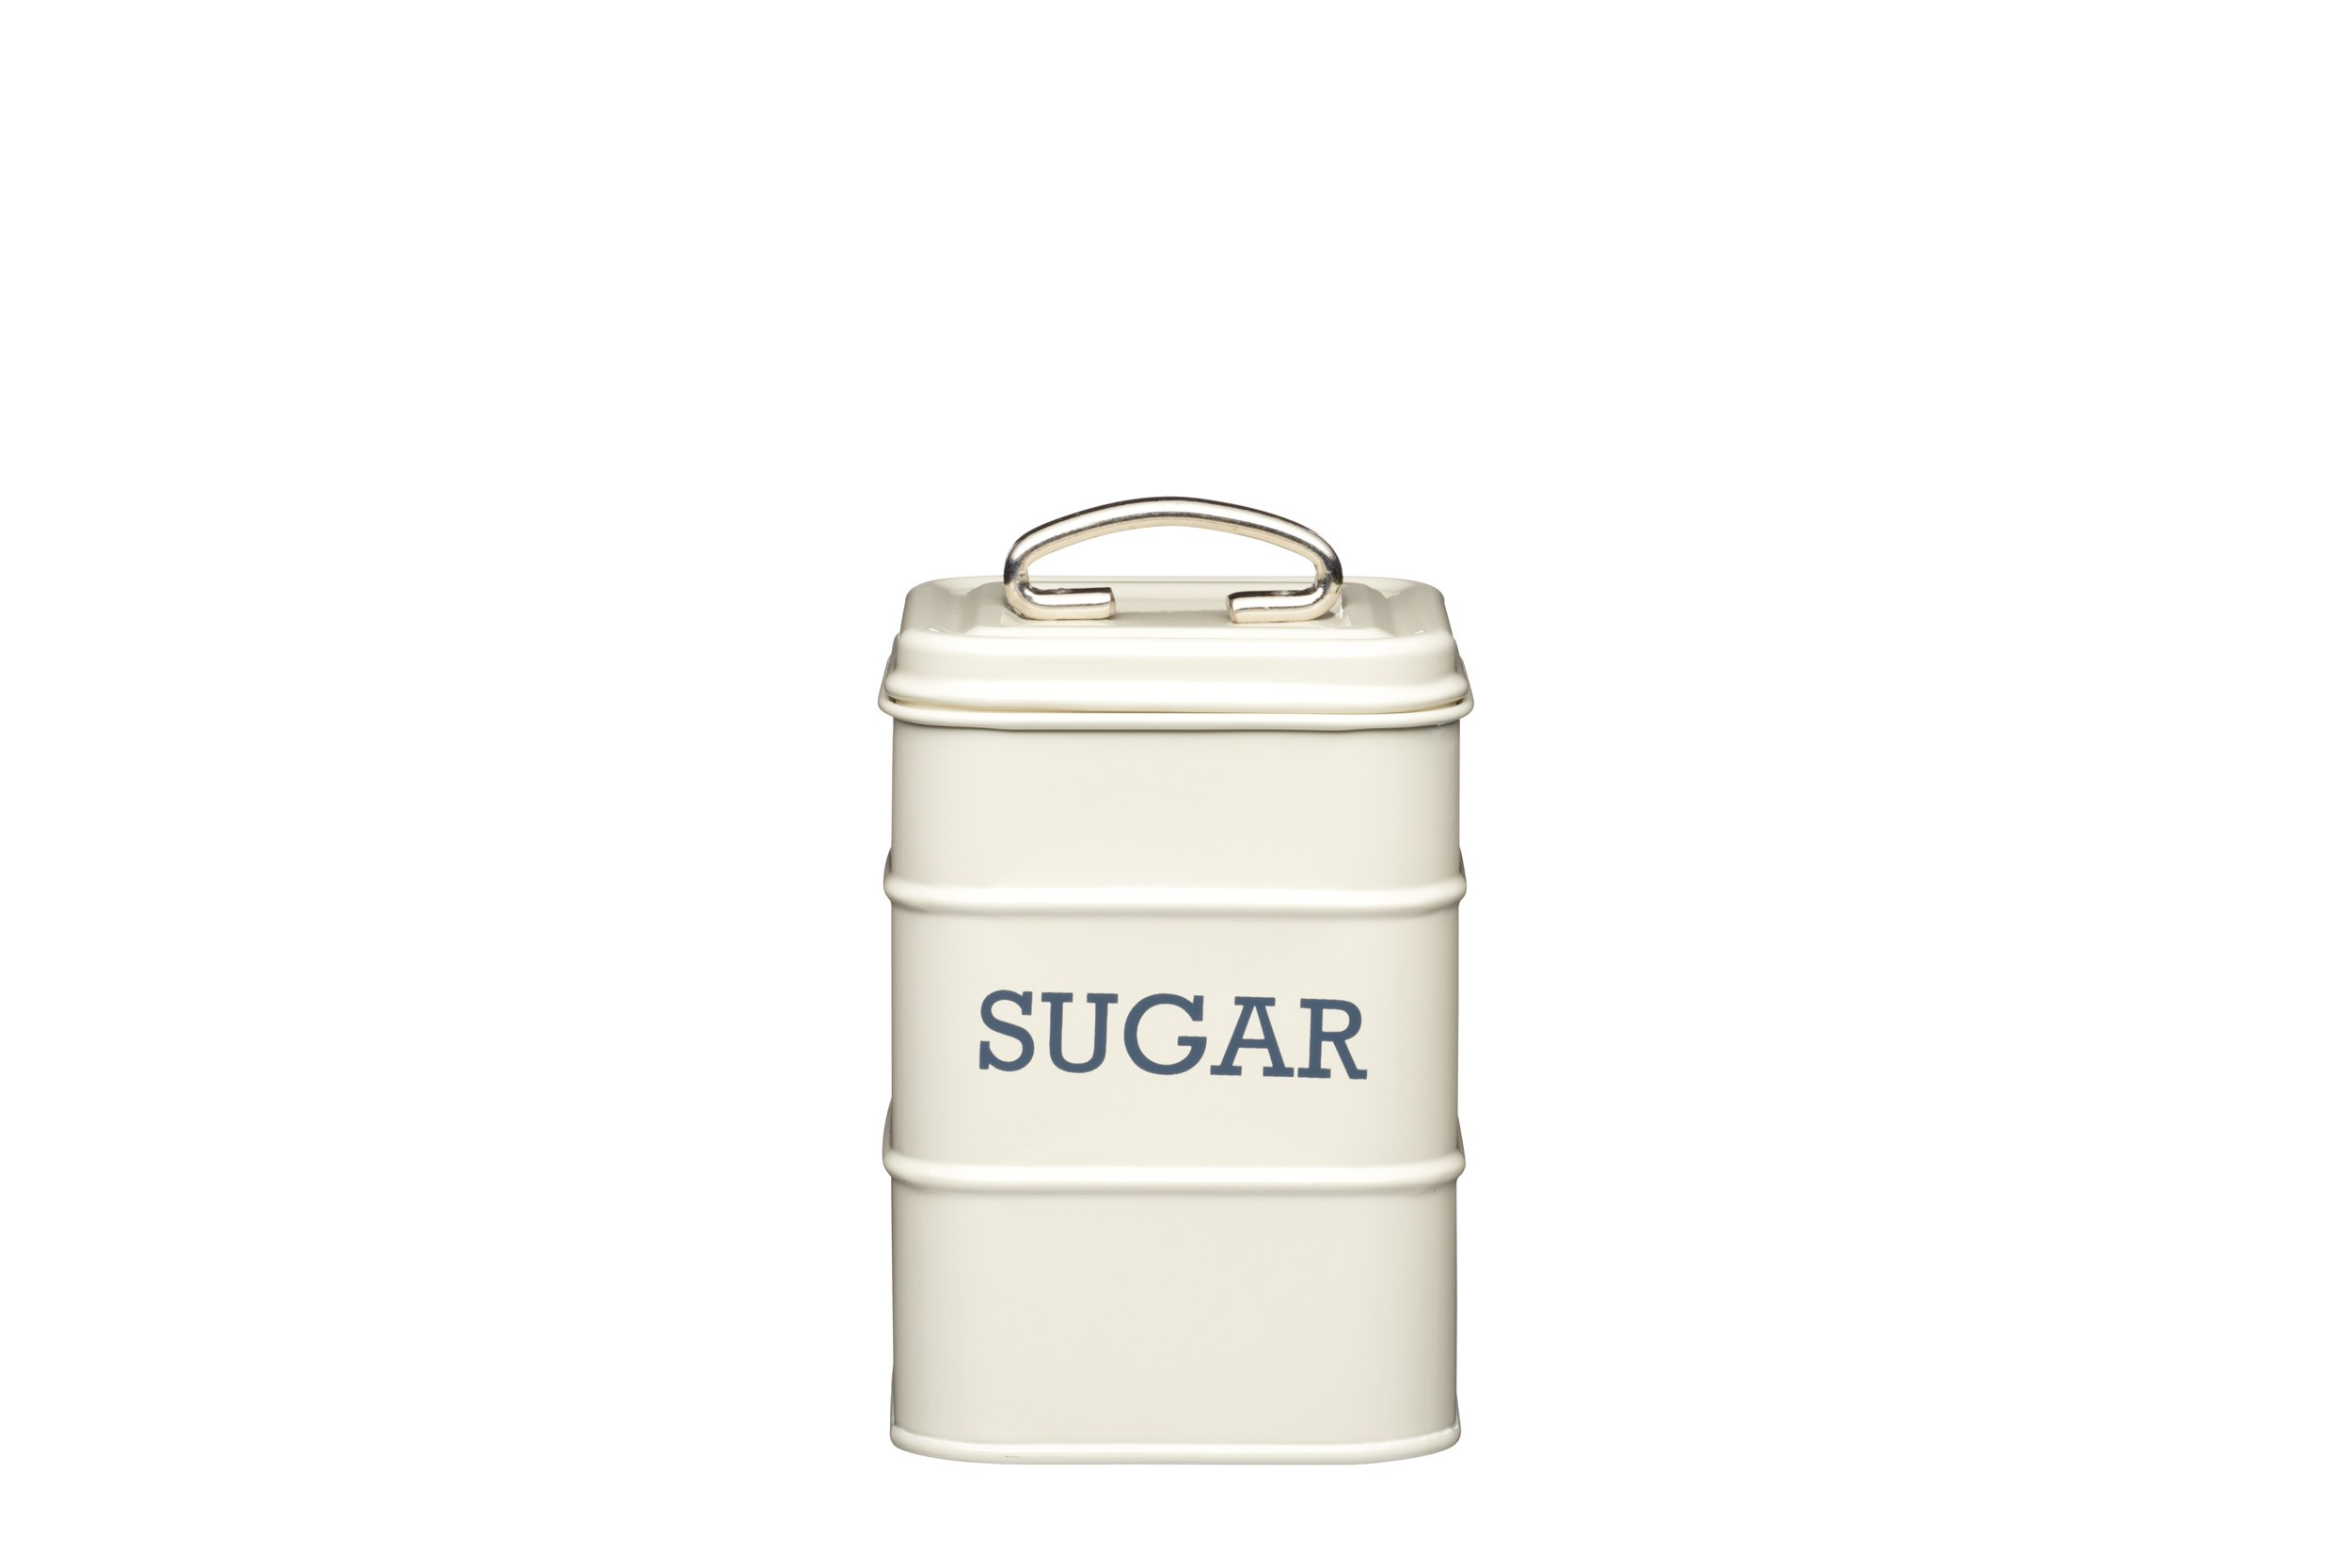 Kitchen Craft Living Nostalgia Sugar Canister Cream 11cm X 17cm